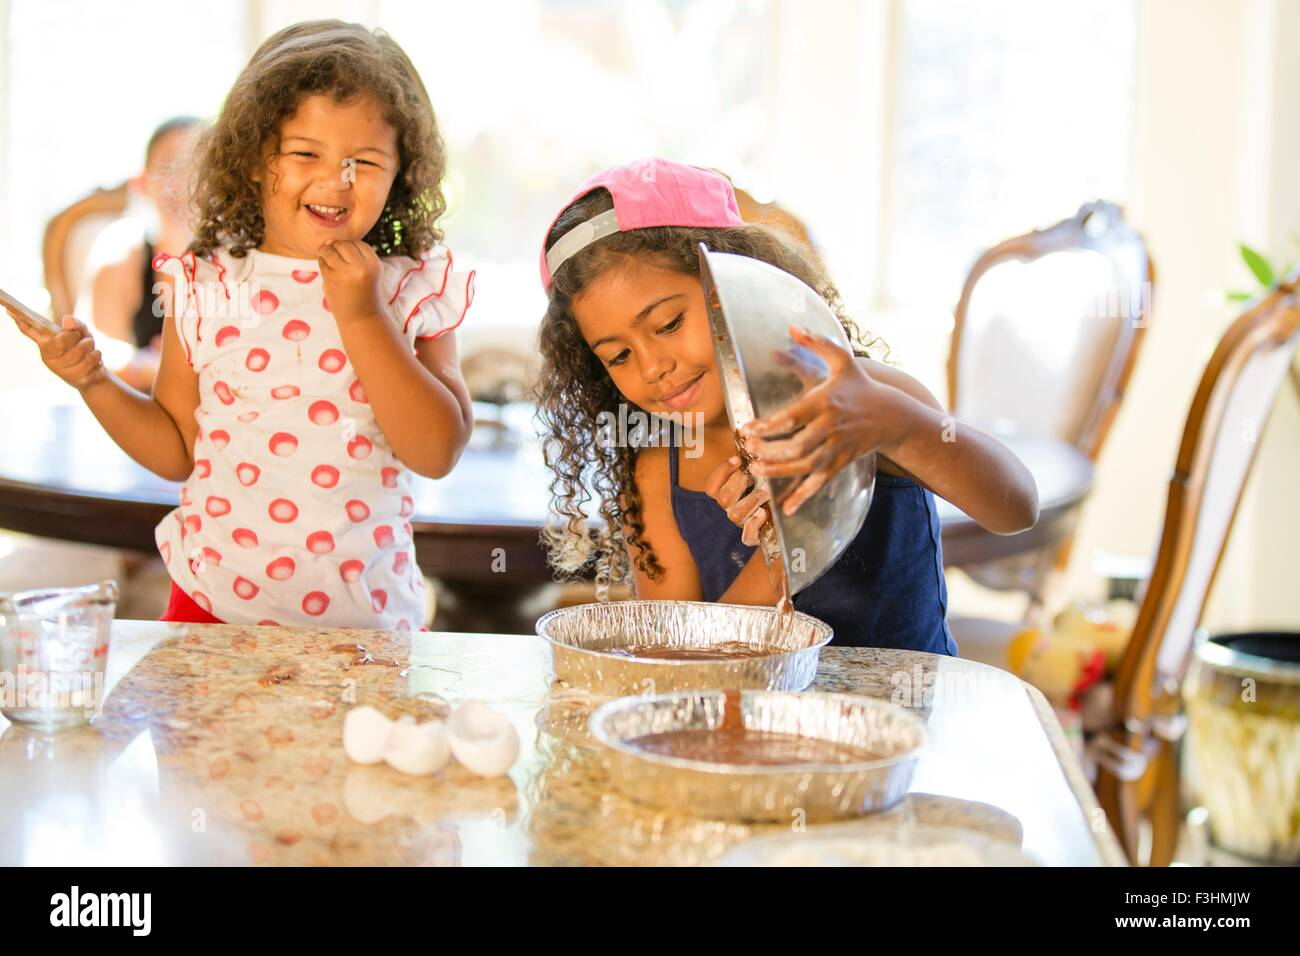 Sisters pouring chocolate cake mix from mixing bowl into cake tins smiling - Stock Image